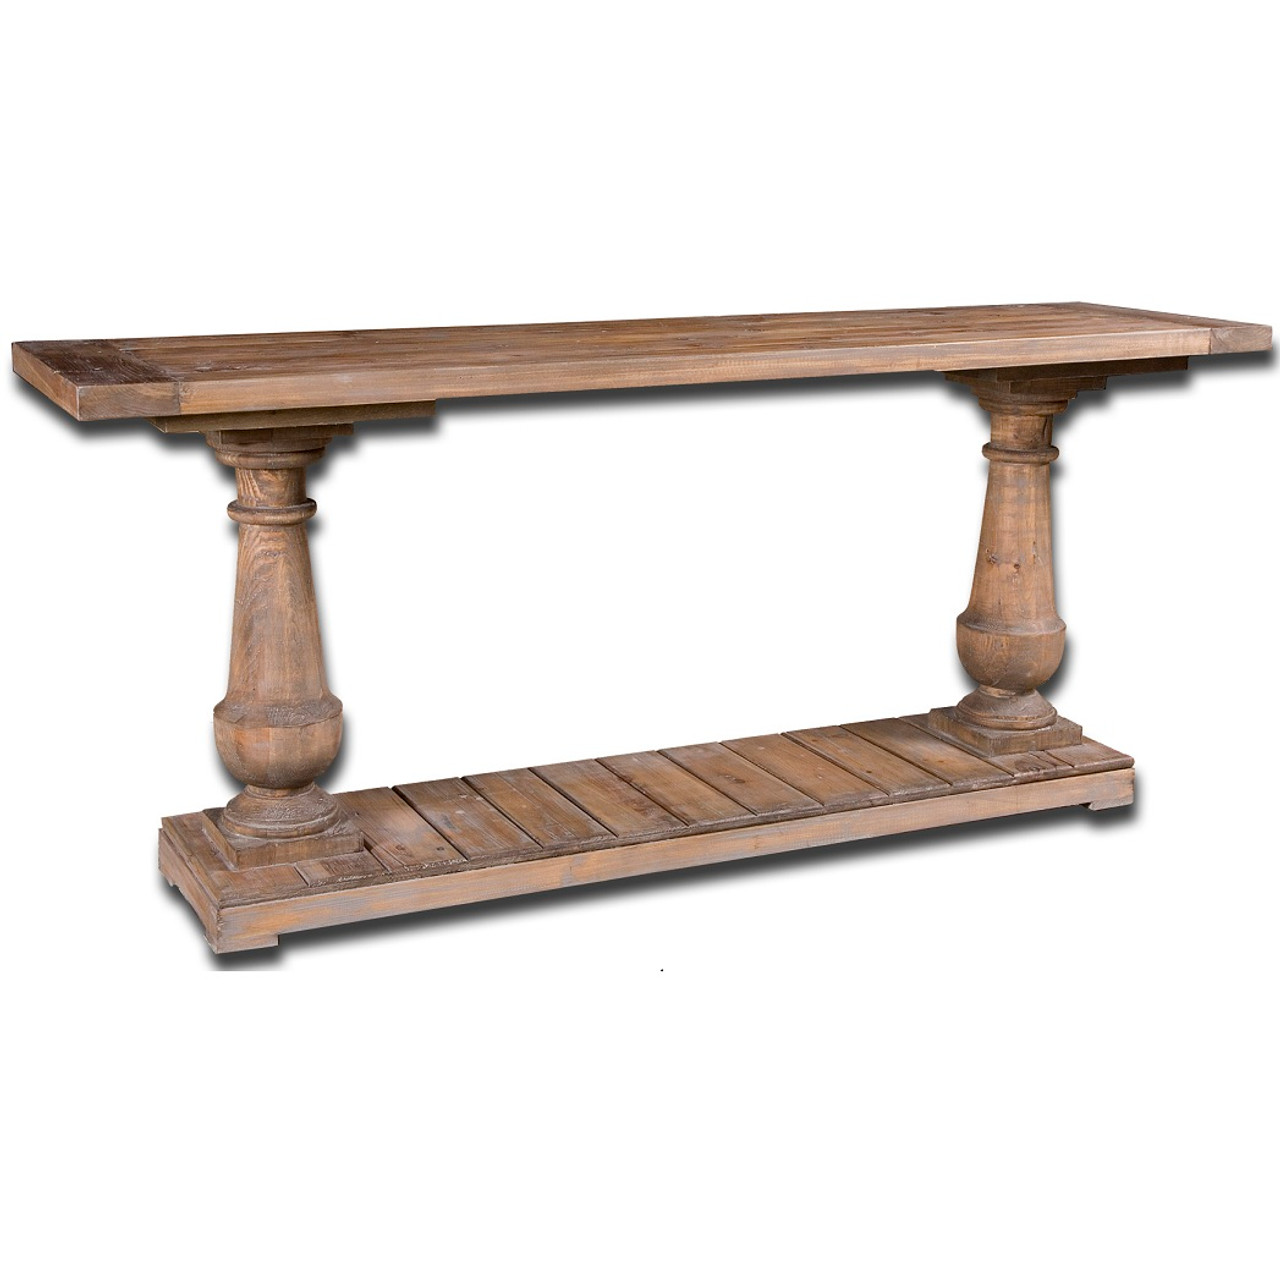 Nice Reclaimed Wood Distressed Console Table